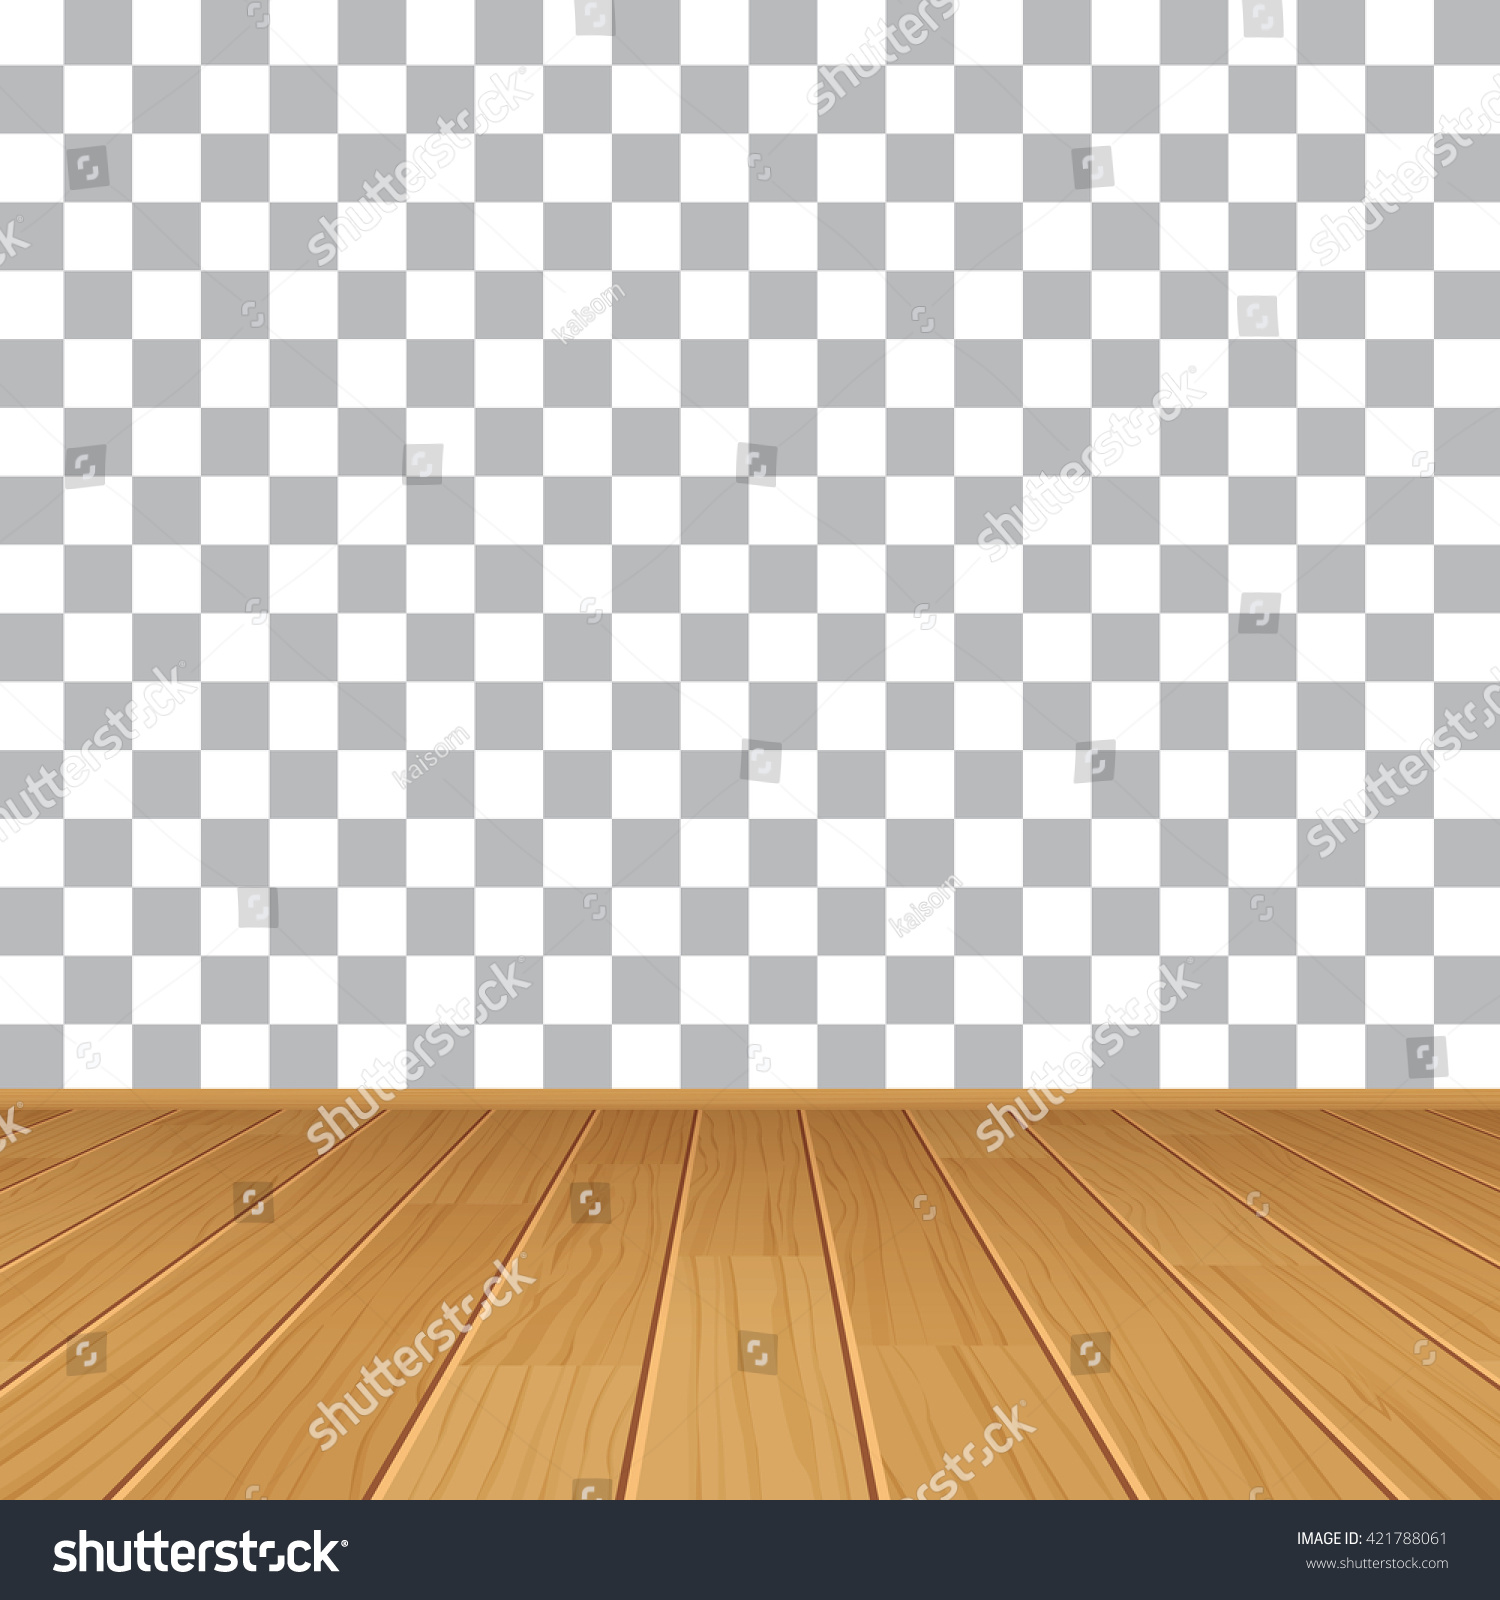 wooden top isolated - photo #34